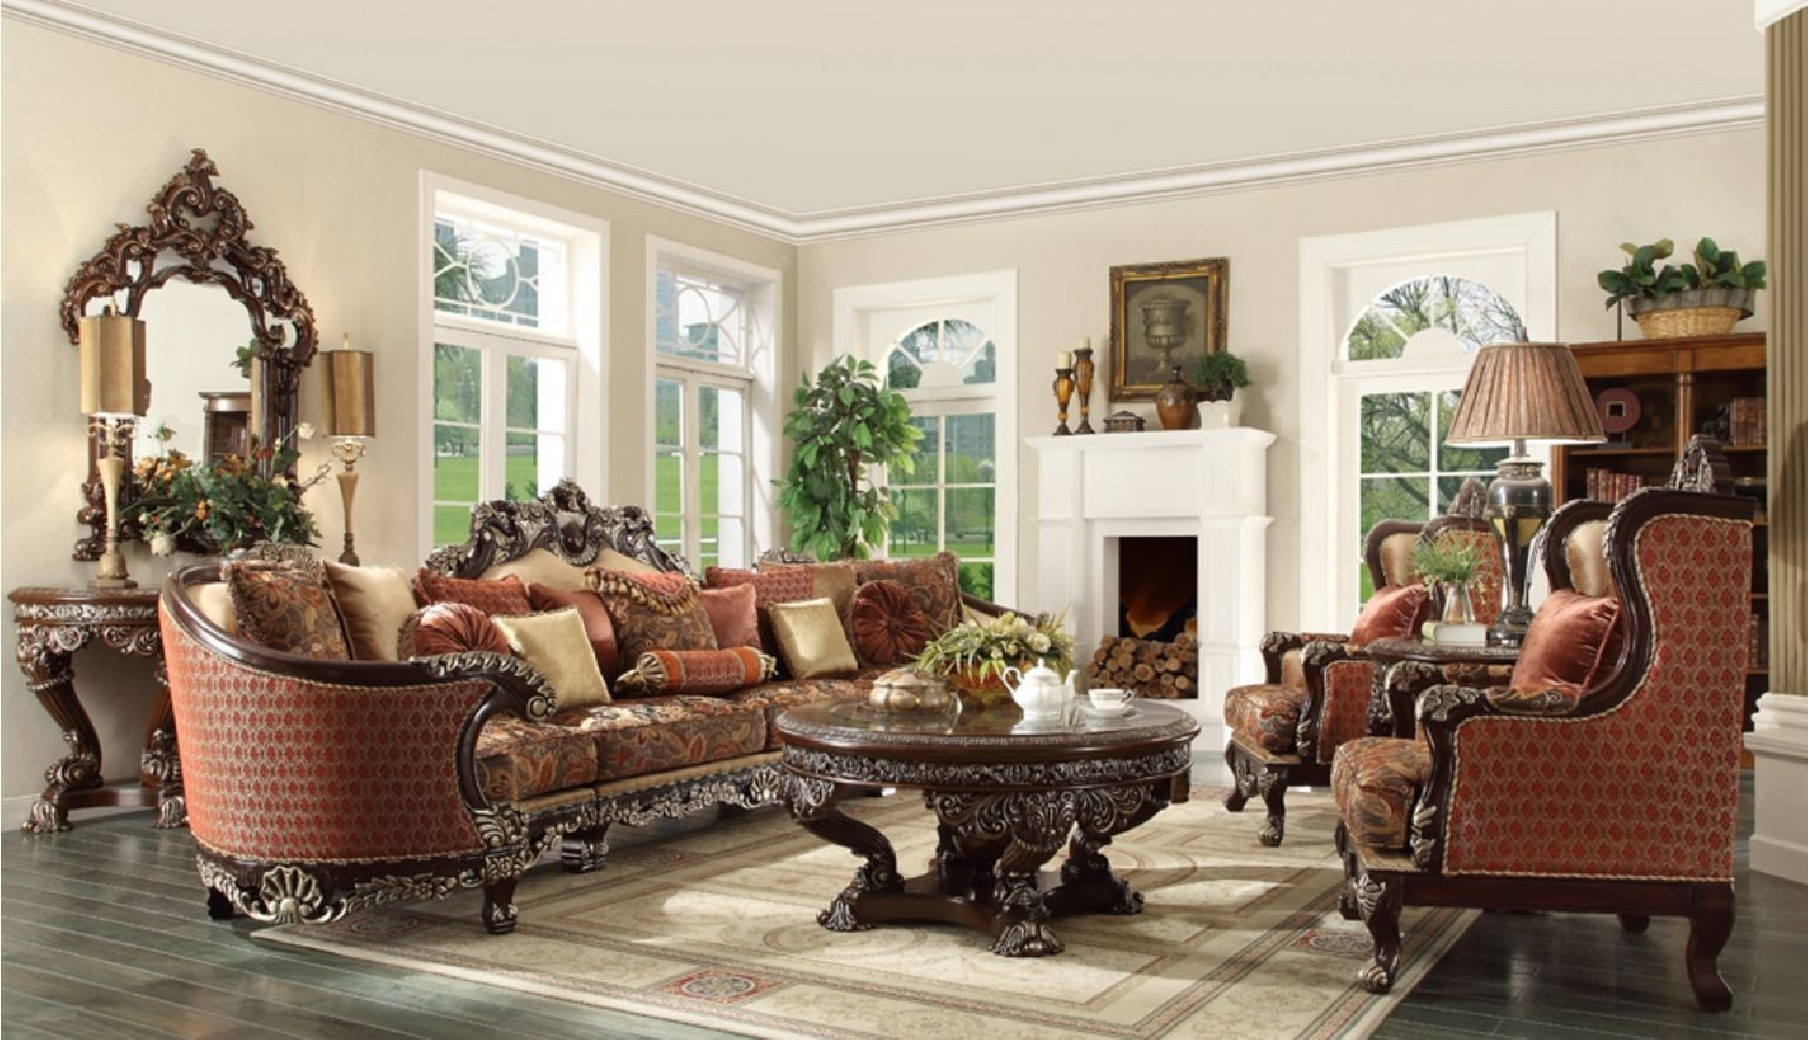 HD 111 Homey Design upholstery living room set Victorian  : hd 111 homey design upholstery living room set victorian european classic design sofa set from themansionfurniture.com size 1808 x 1040 jpeg 381kB